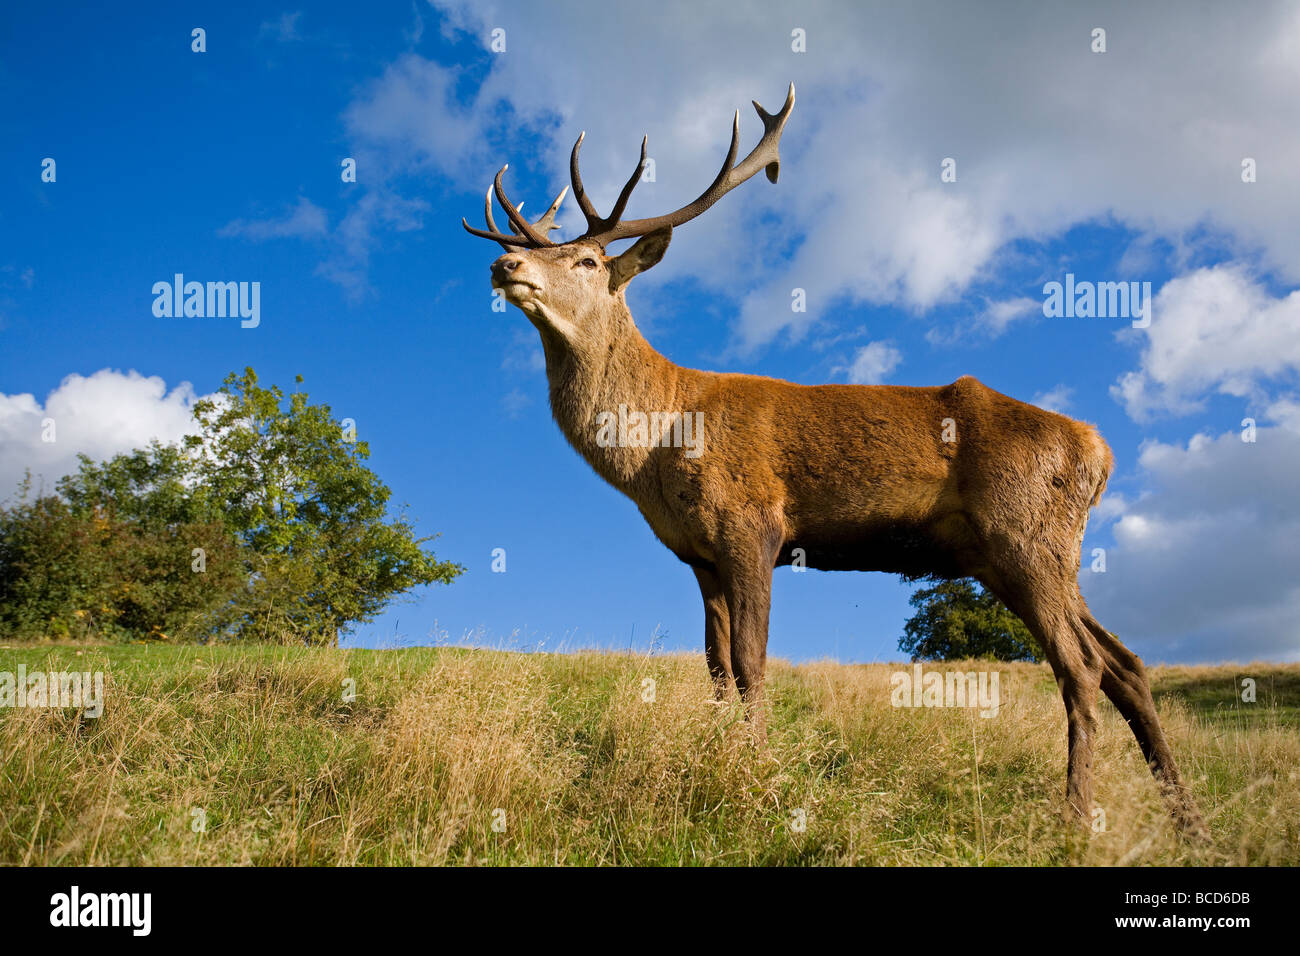 RED DEER (Cervus elephas) stag at his best during the rutting season. - Stock Image